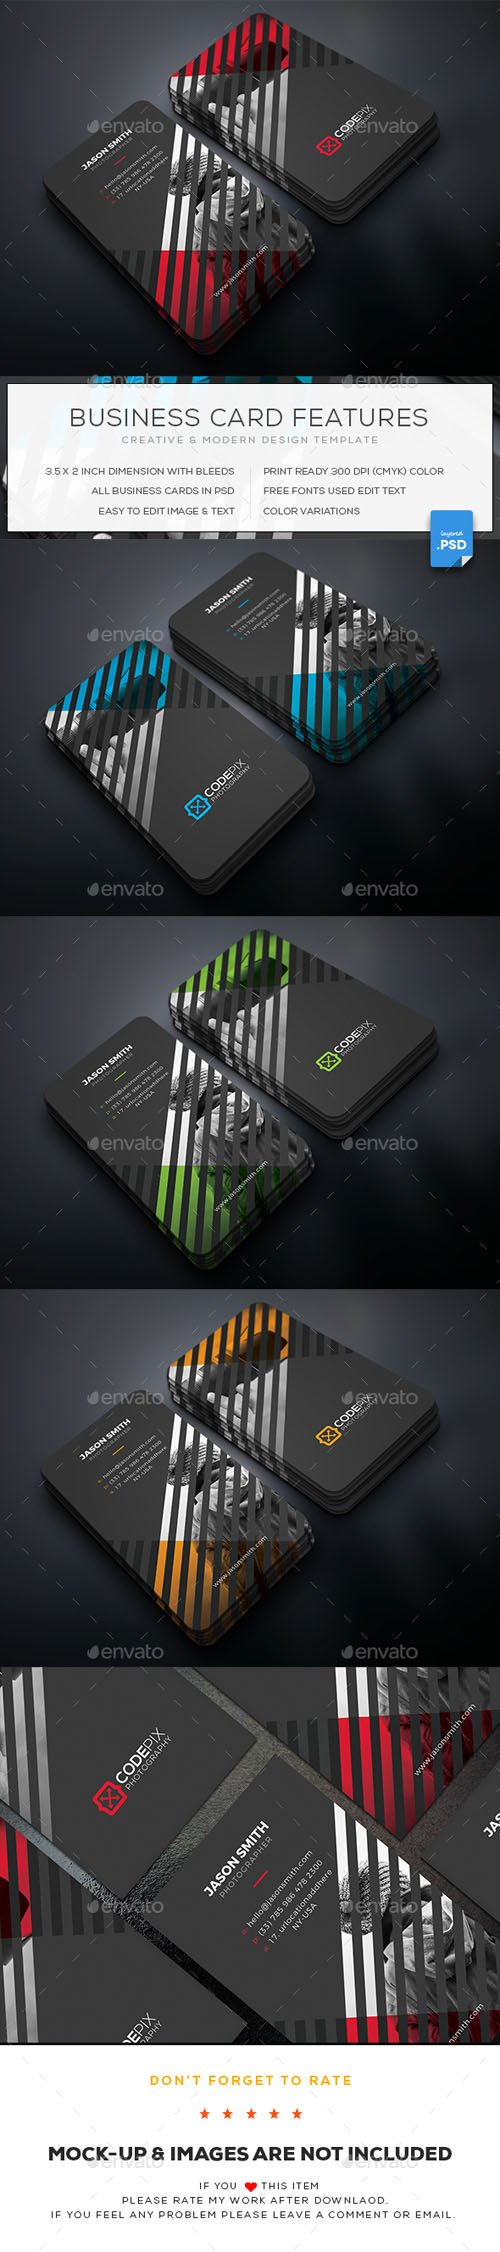 Graphicriver - Photography Business Card 20217576